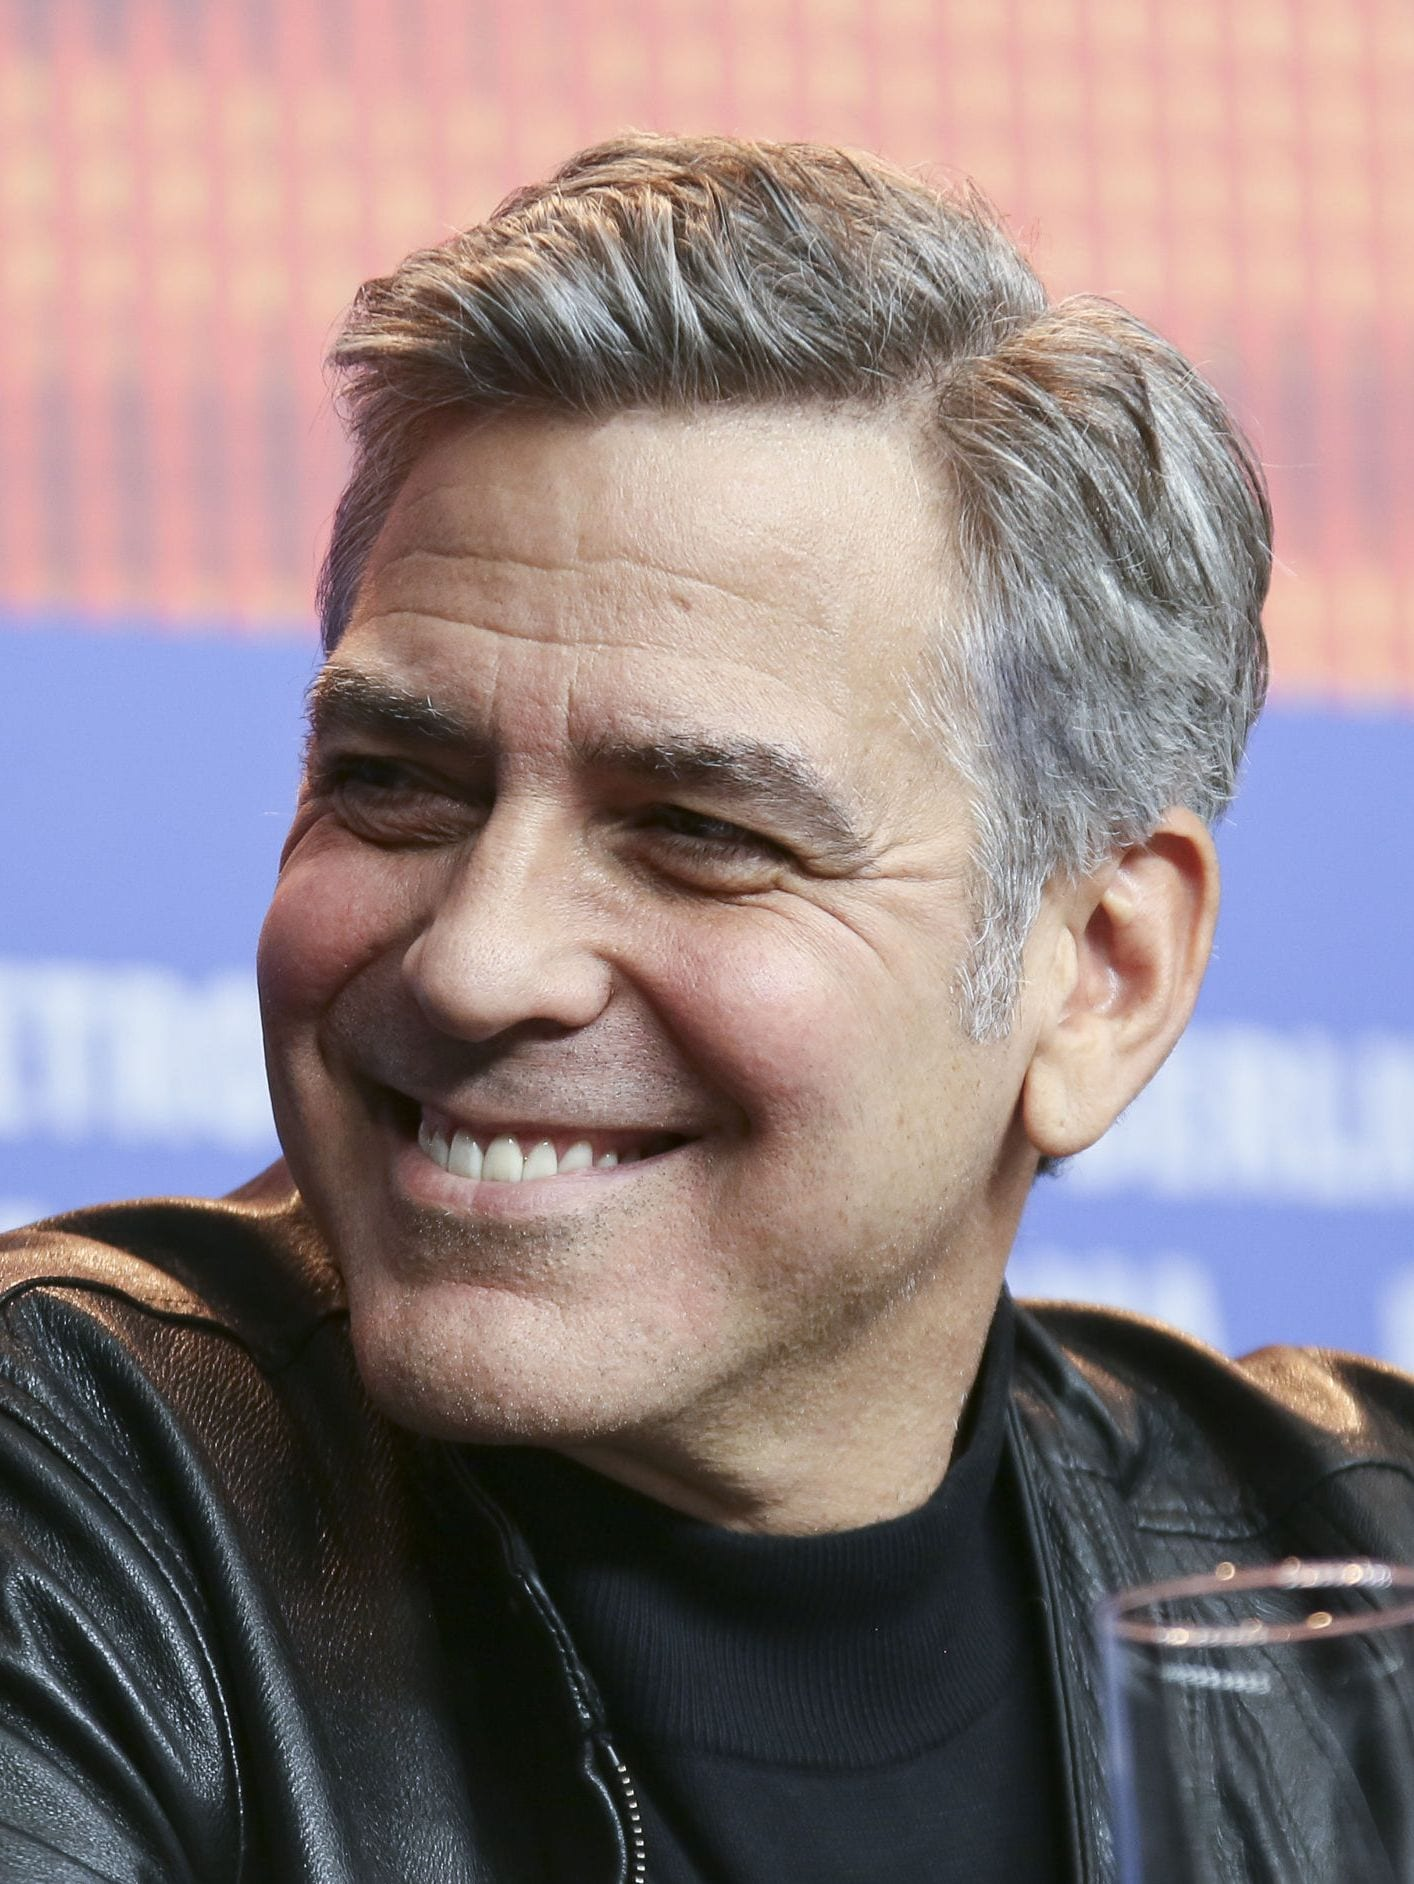 George Clooney side part hairstyle with grey hair